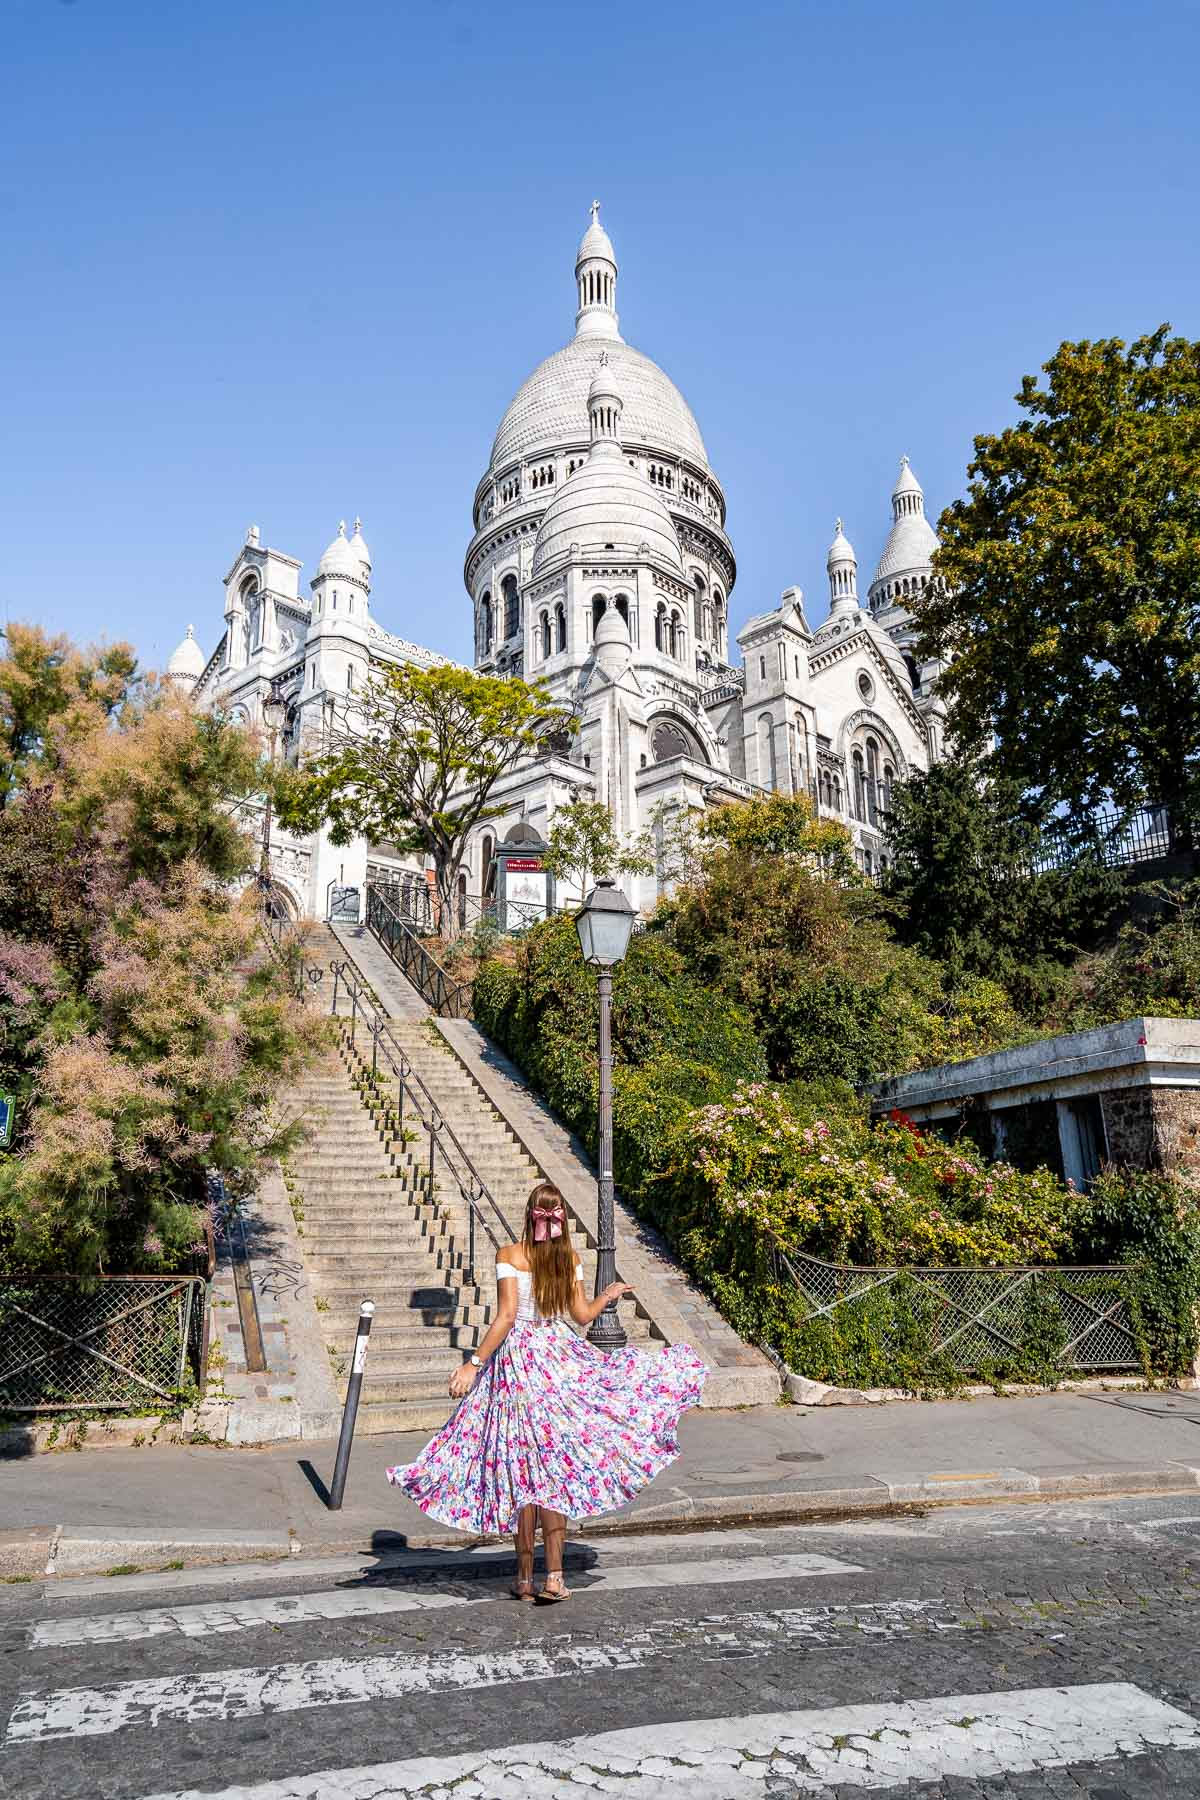 Girl in a pink floral skirt standing in front of the Sacré-Coeur Basilica in Paris